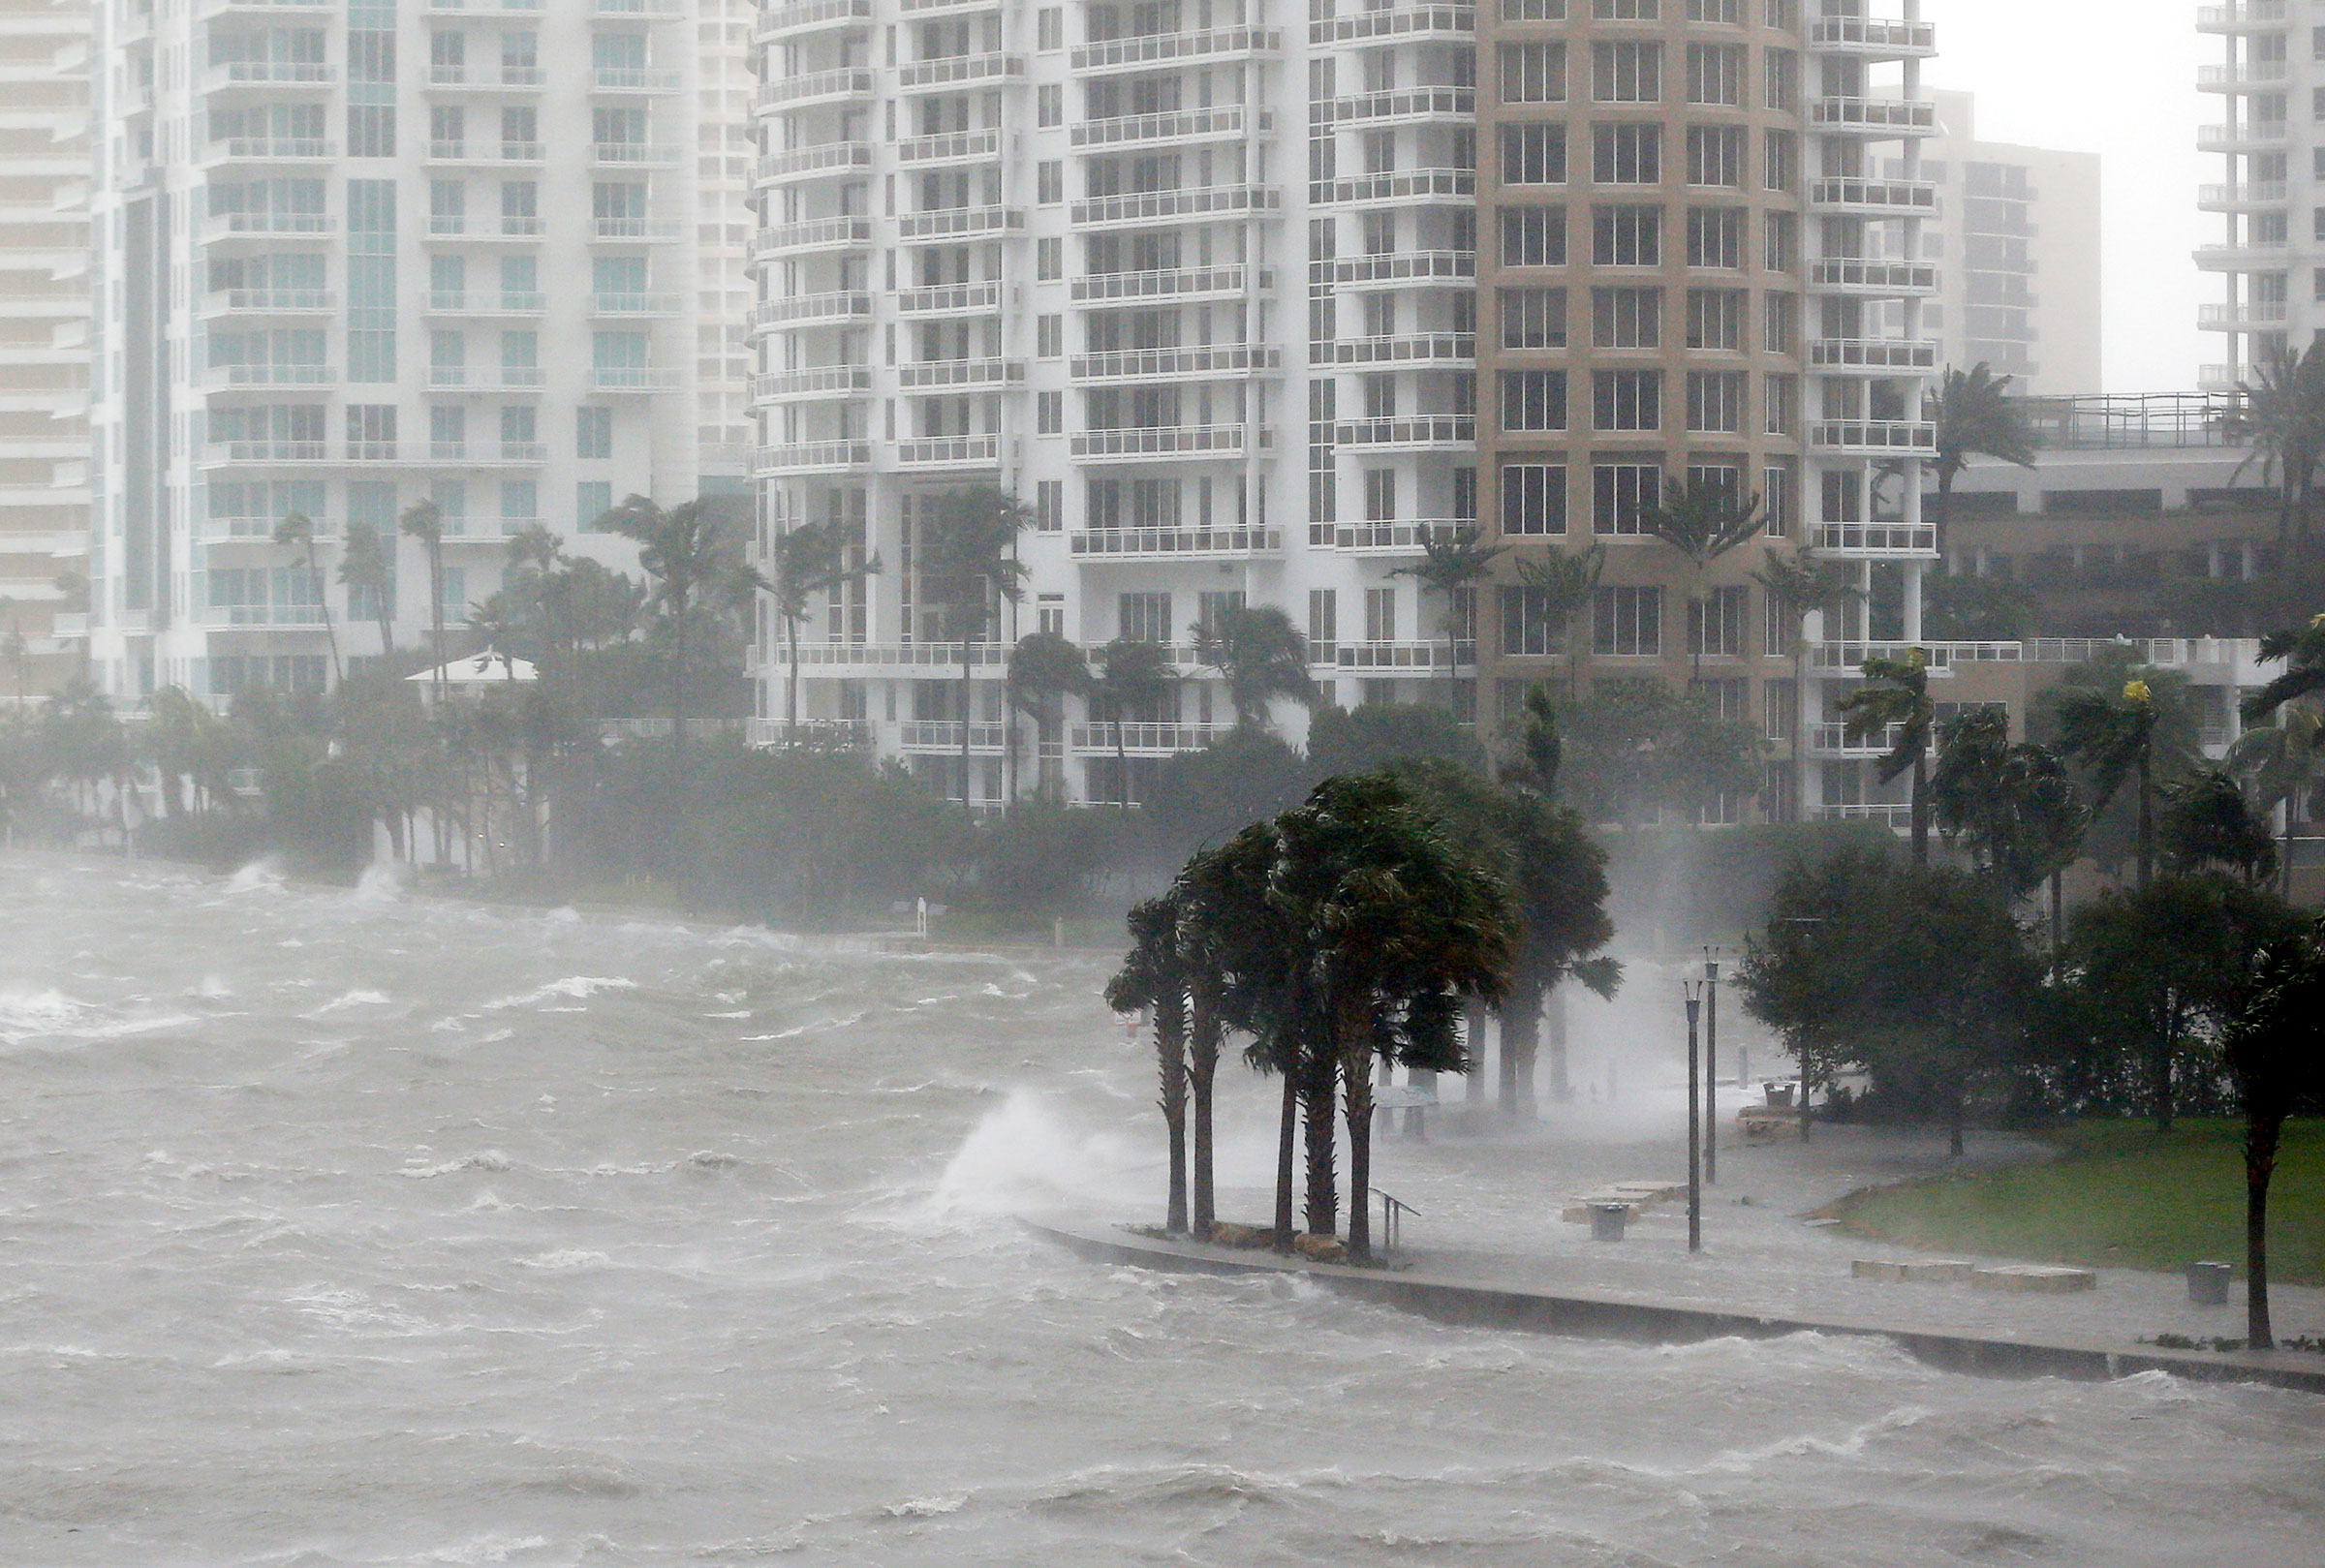 Waves crash over a seawall at the mouth of the Miami River from Biscayne Bay, FL, as Hurricane Irma passed through Miami in September 2017. Stronger hurricanes are one impact of rising global temperatures. Wilfredo Lee/AP